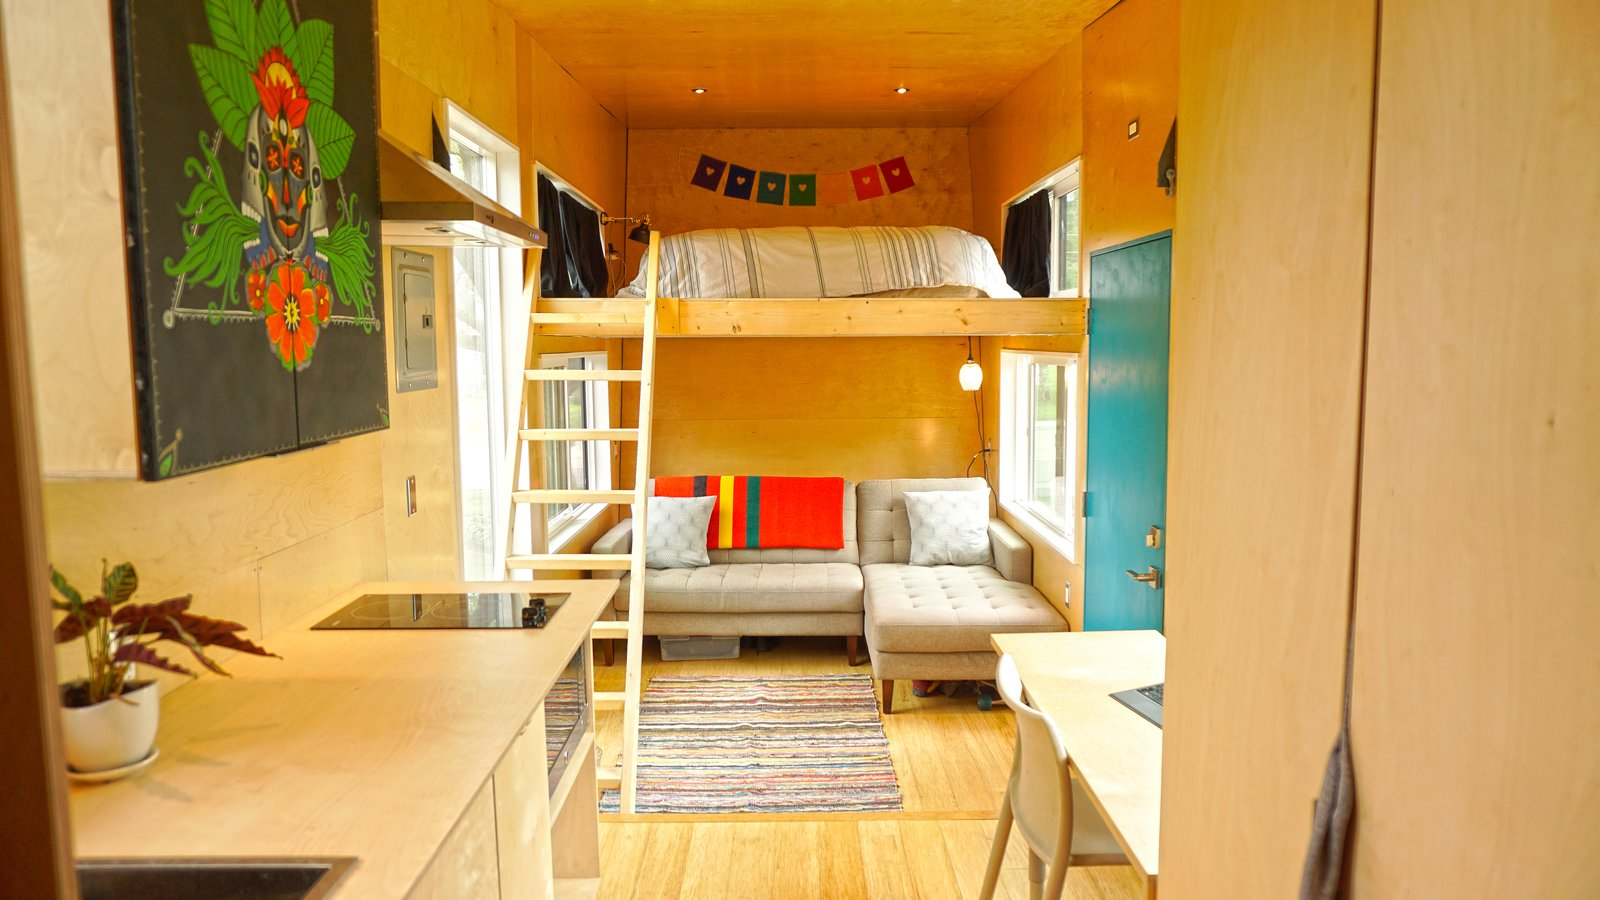 Living Room, Sectional, Desk, Chair, Recessed Lighting, Light Hardwood Floor, and Rug Floor  Photo 11 of 21 in 10 Things You Should Know Before Moving Into a Tiny Home from Go Exploring With This Tiny Home in Tow